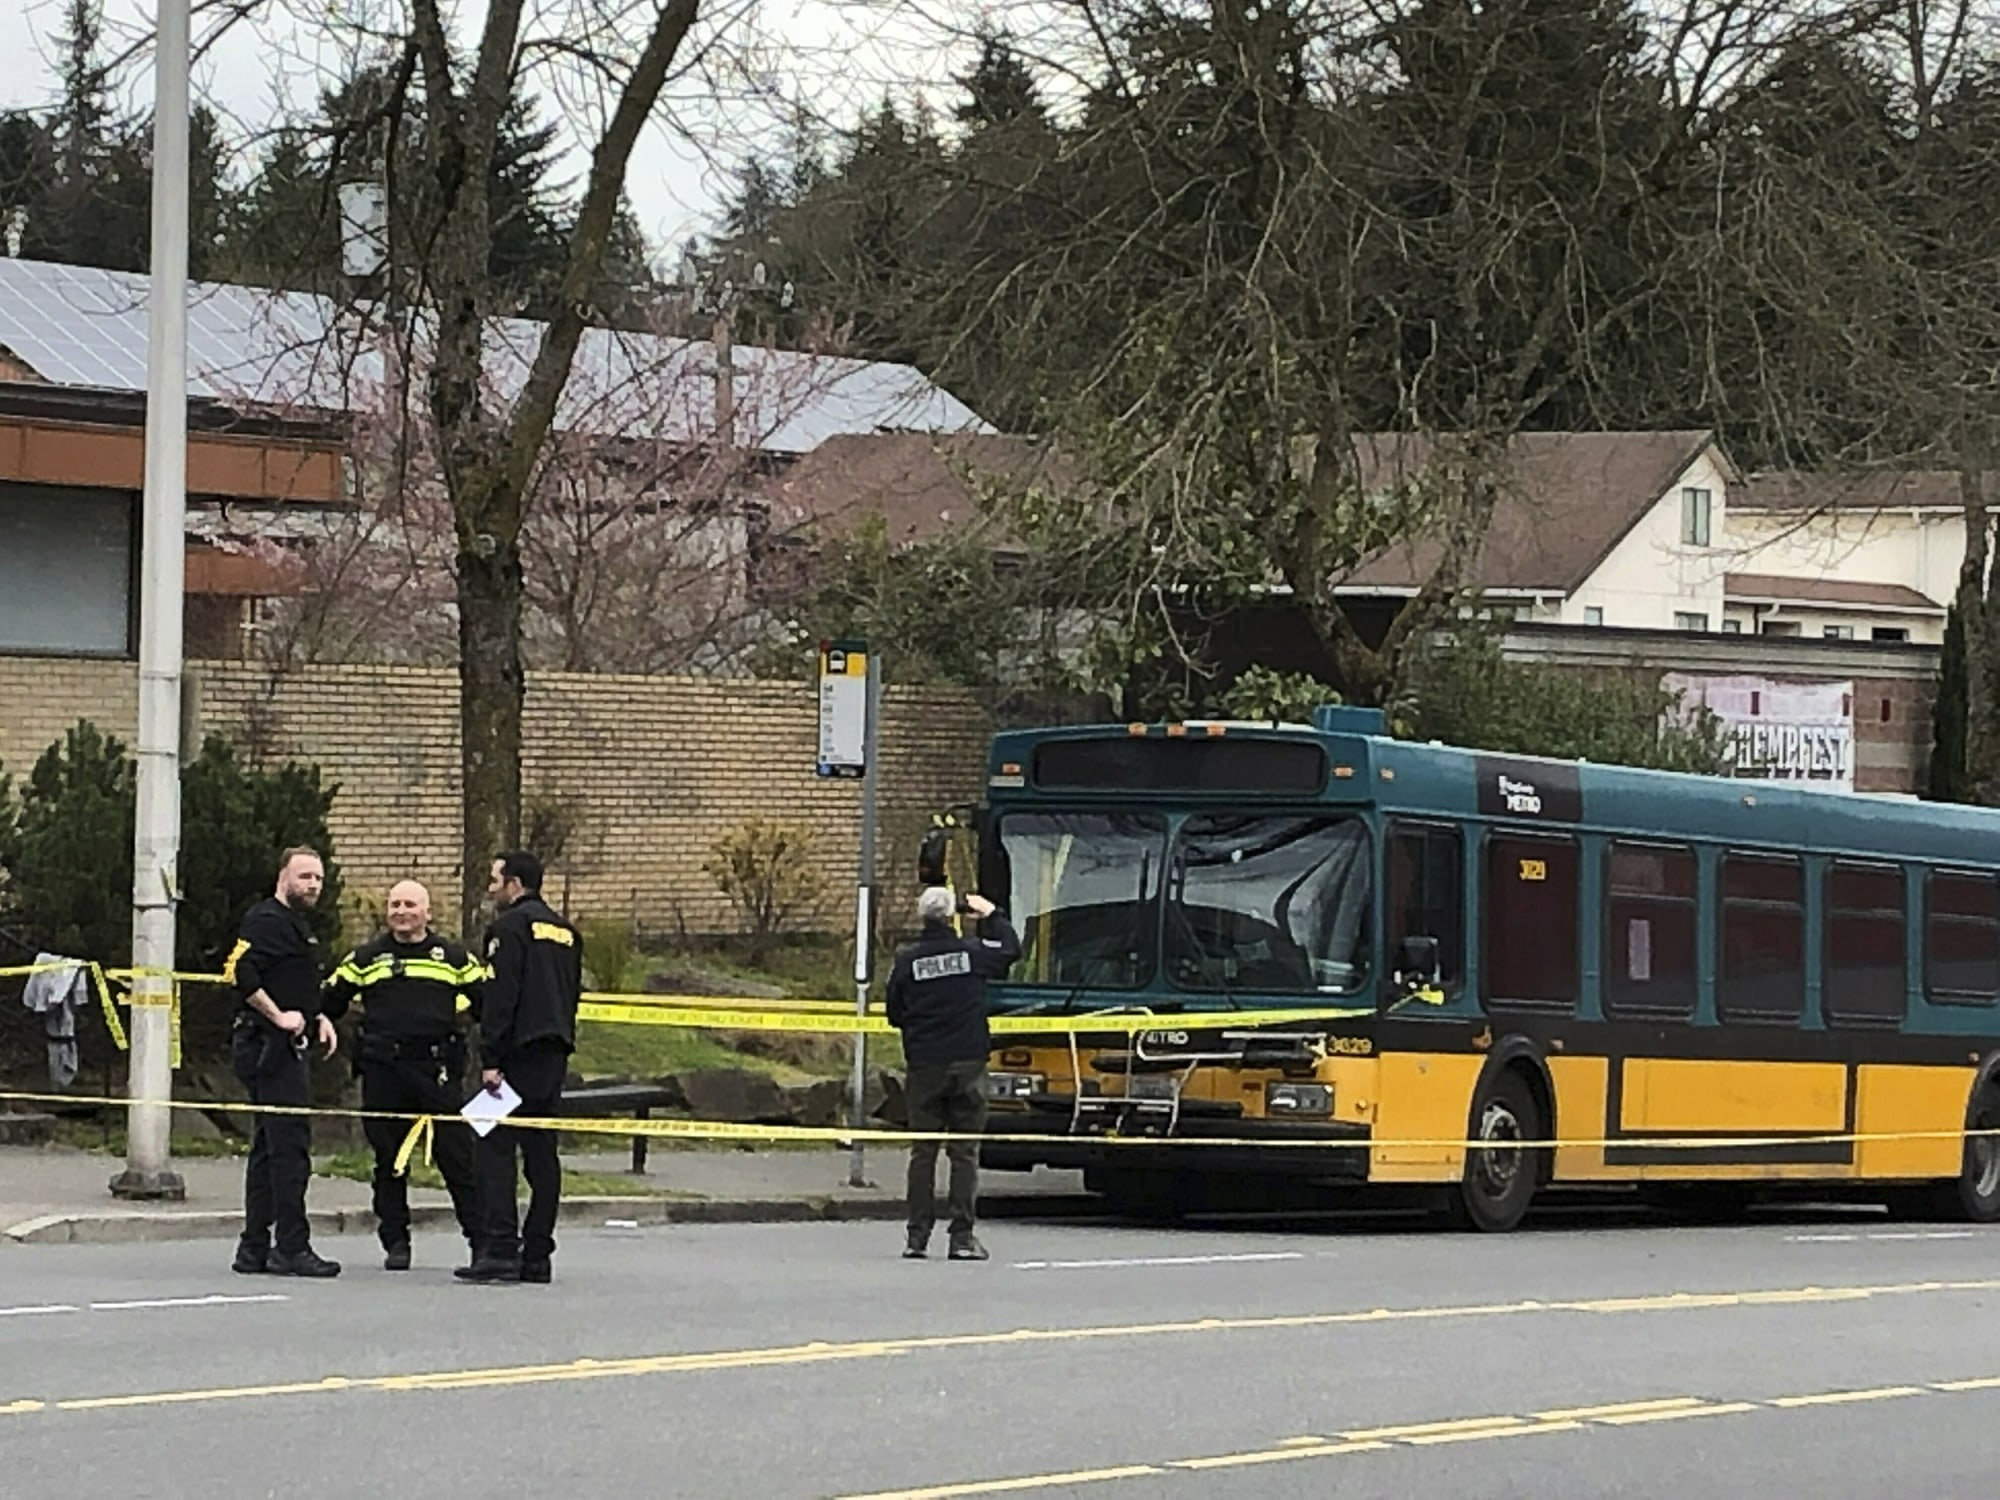 https://media2.s-nbcnews.com/j/newscms/2019_13/2801551/190327-bus-shooting-seattle-ac-938p_aa9241b793eb57fa9a451bcc007001b0.fit-2000w.jpg